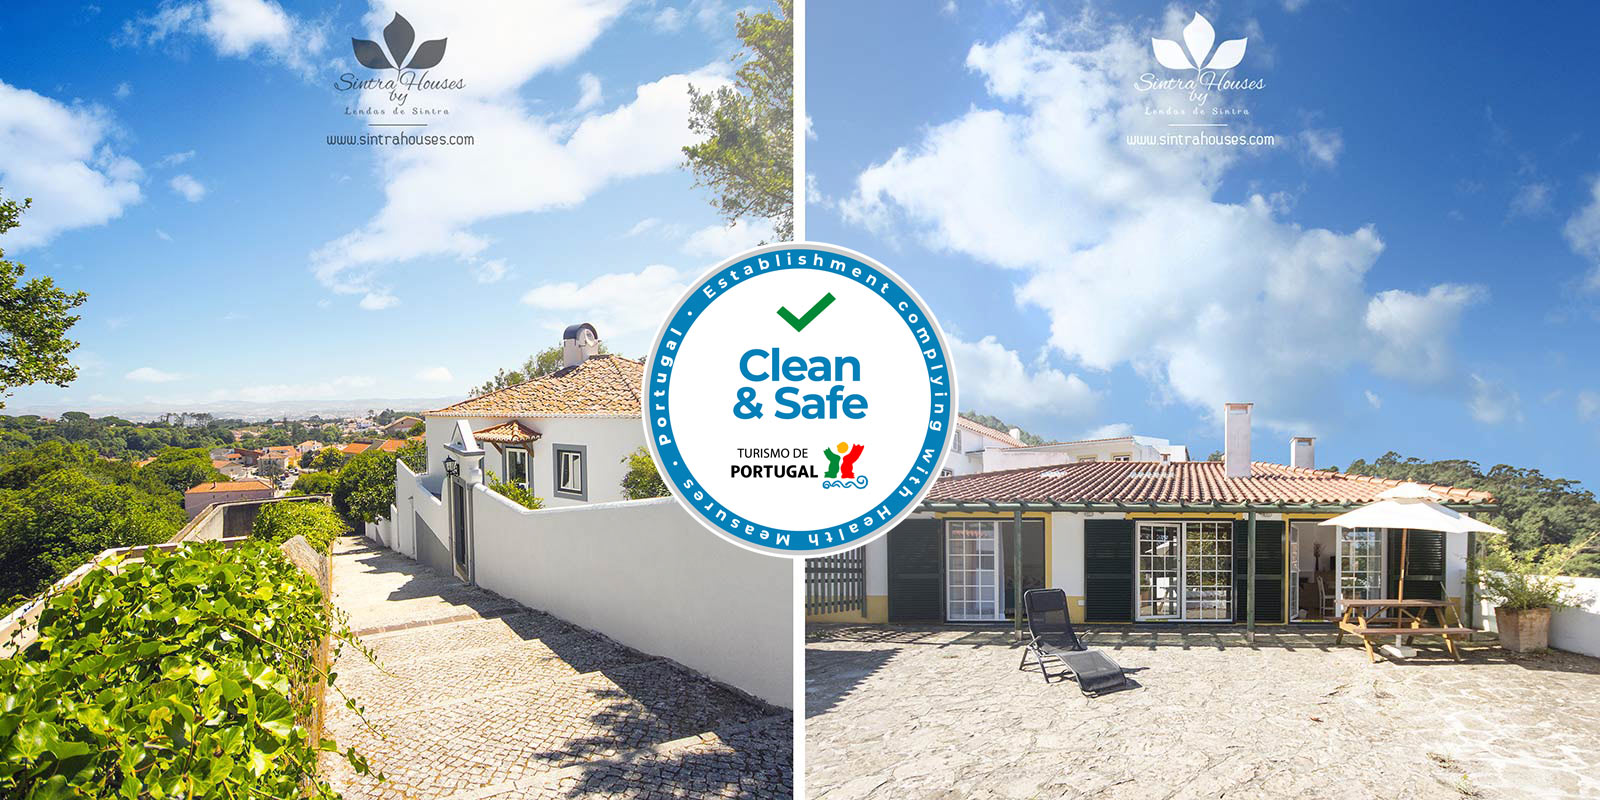 """Sintra Houses by Lendas de Sintra has been accredited by """"Clean & Safe"""""""